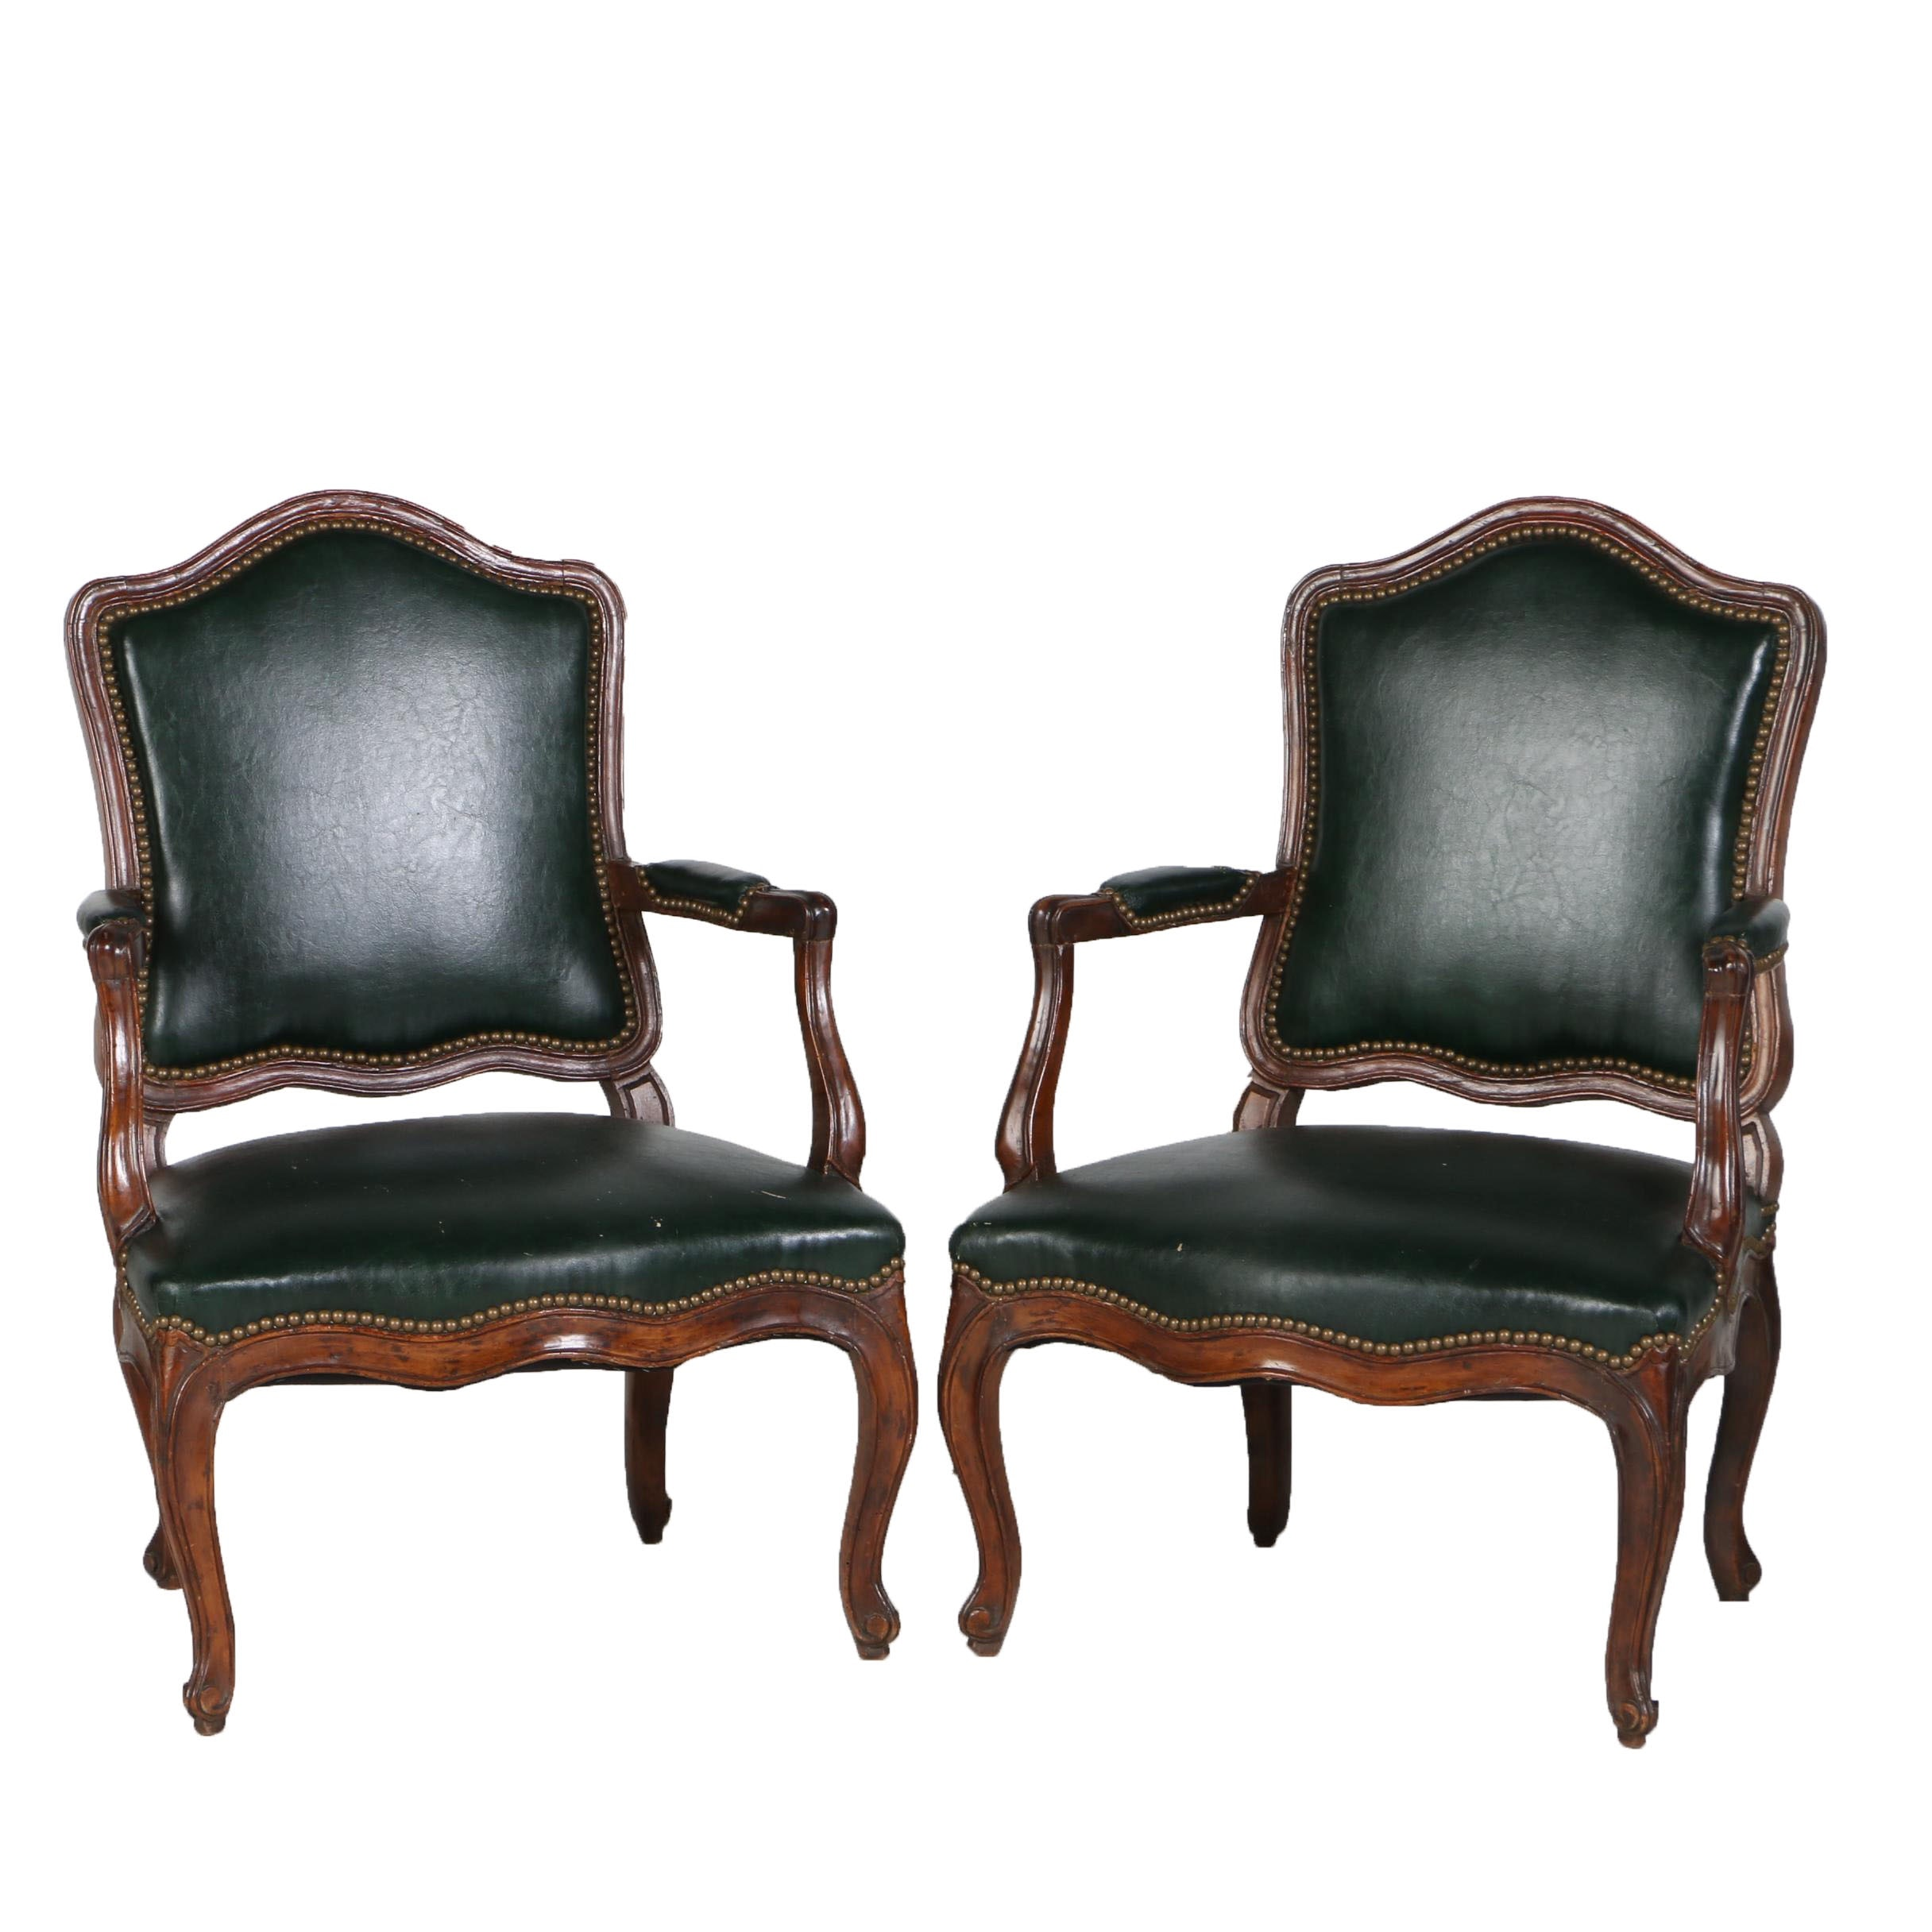 Pair of Louis XV Walnut Fauteuils à la Reine